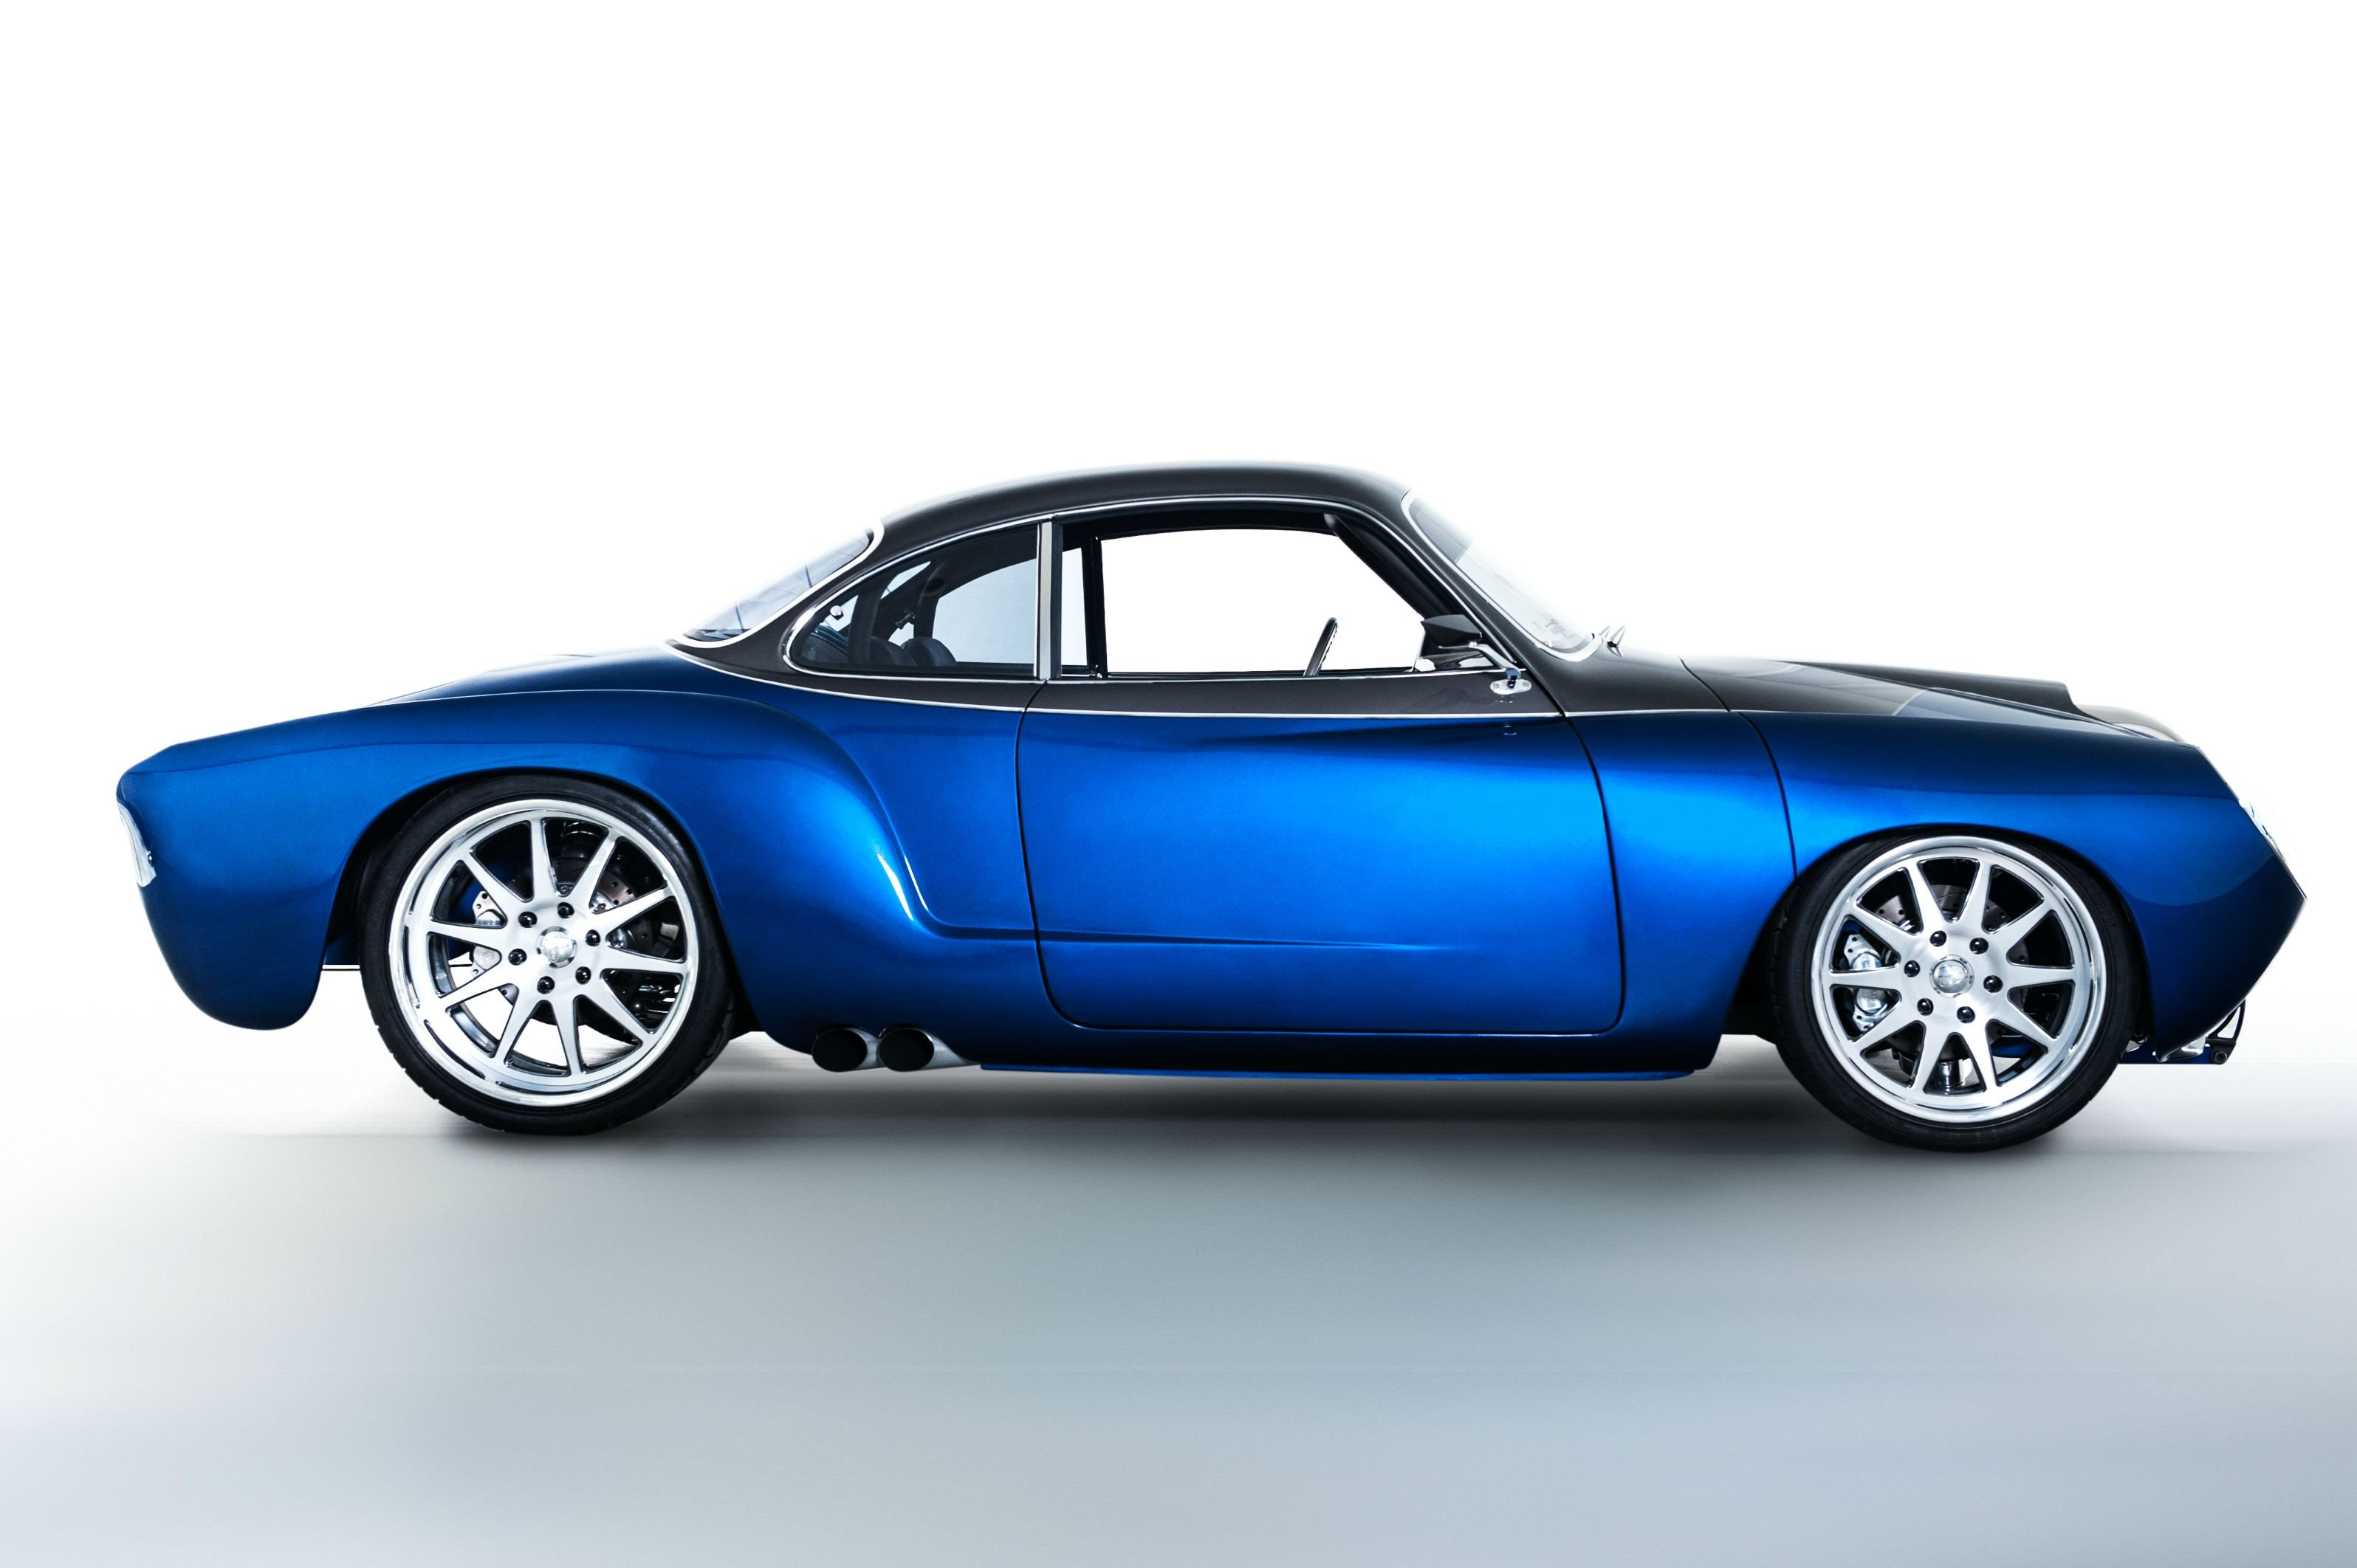 volkswagen karmann ghia volkswagon tuning custom hot rod. Black Bedroom Furniture Sets. Home Design Ideas